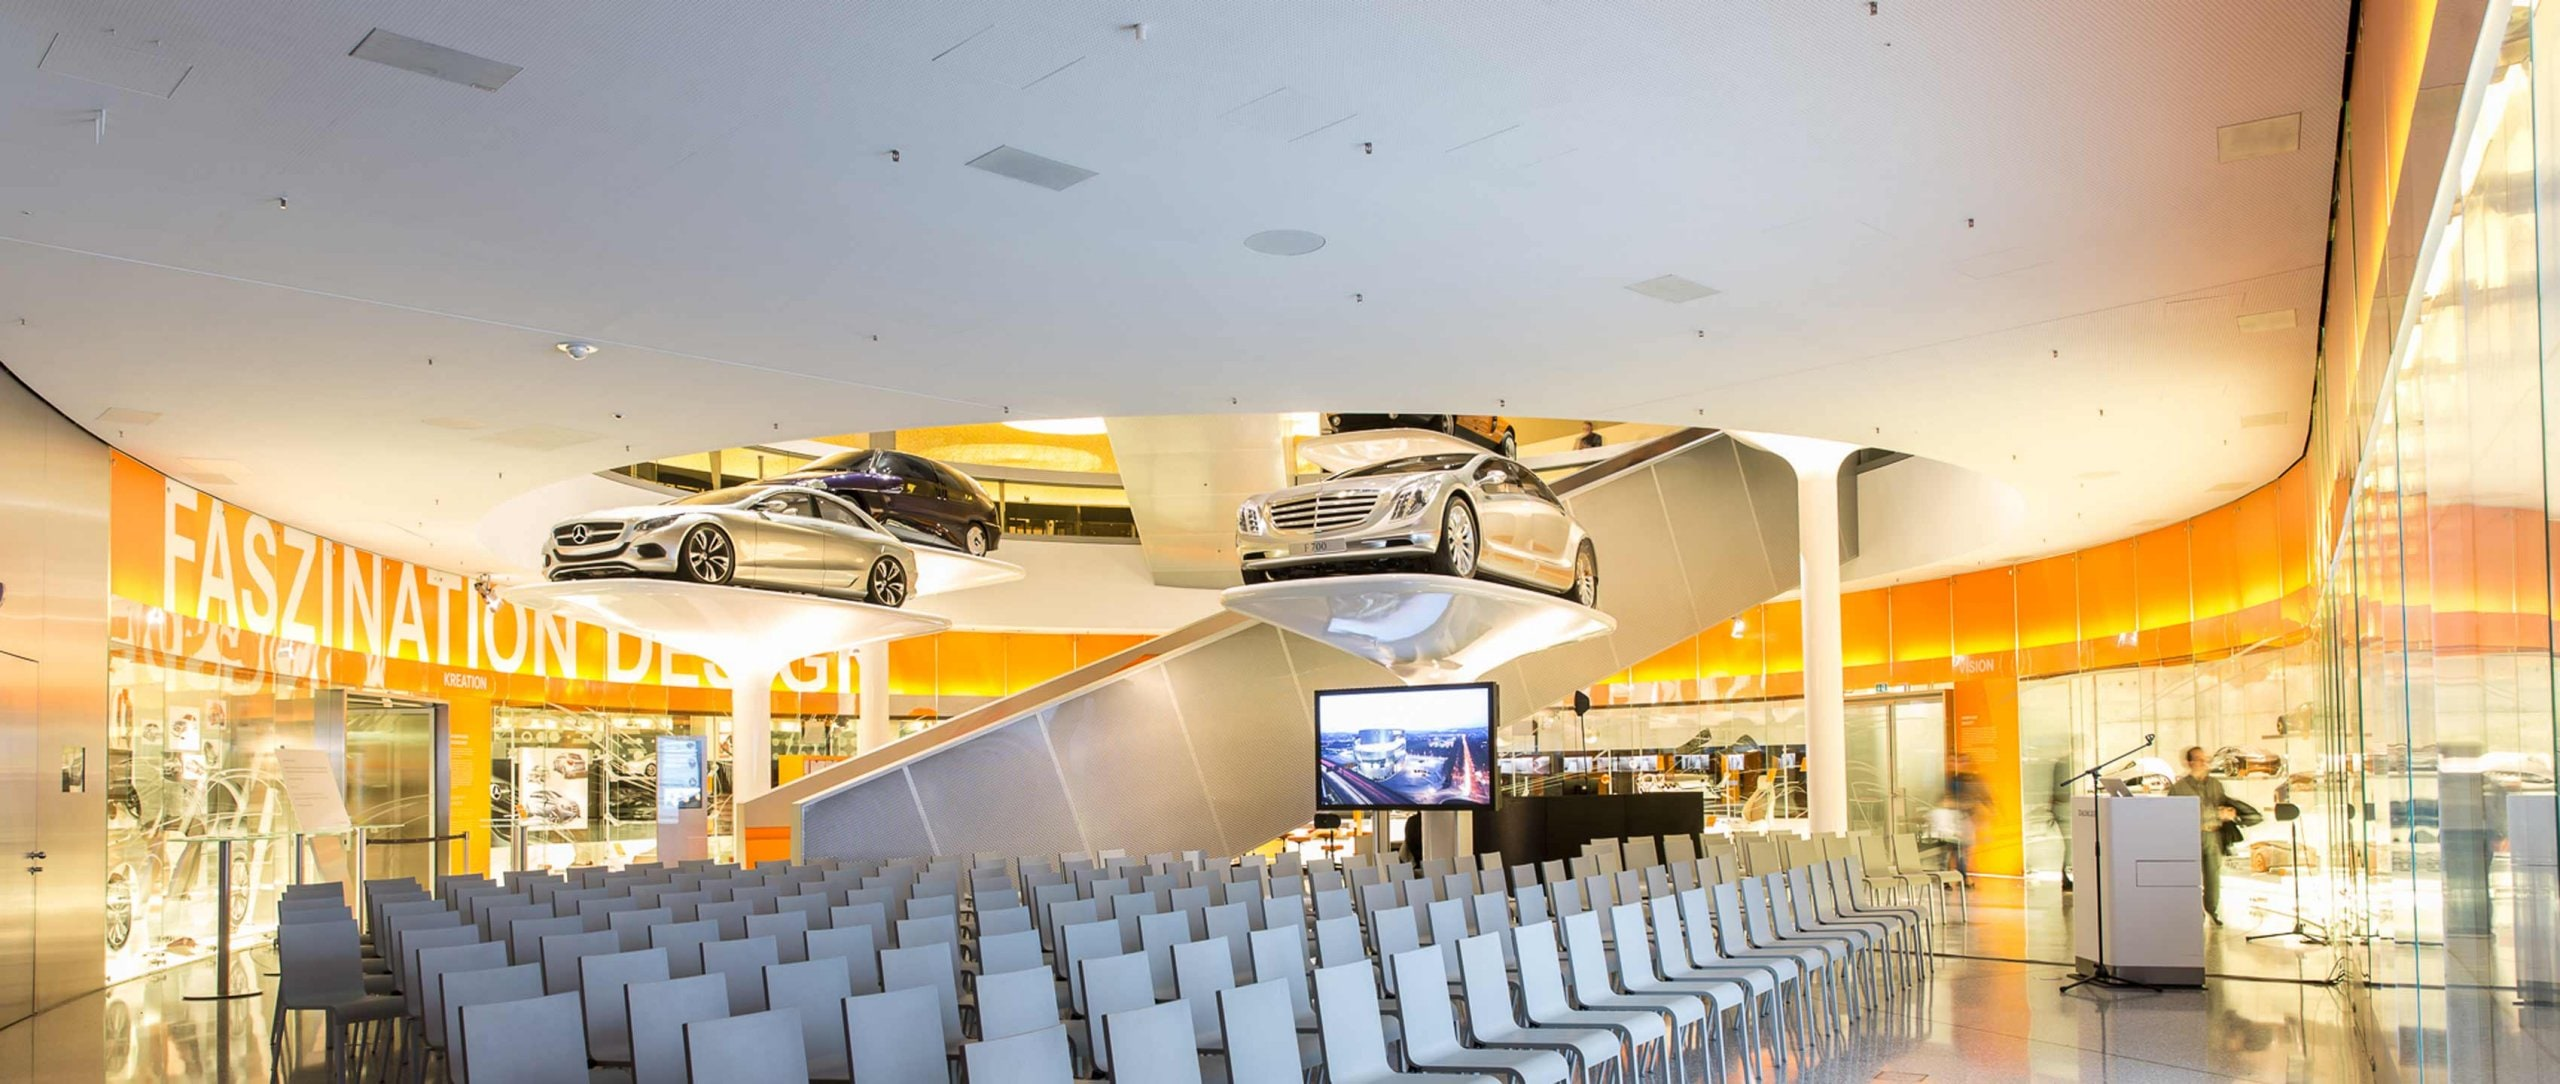 Hosting events at the Mercedes-Benz Museum Stuttgart: Fascination of Design.